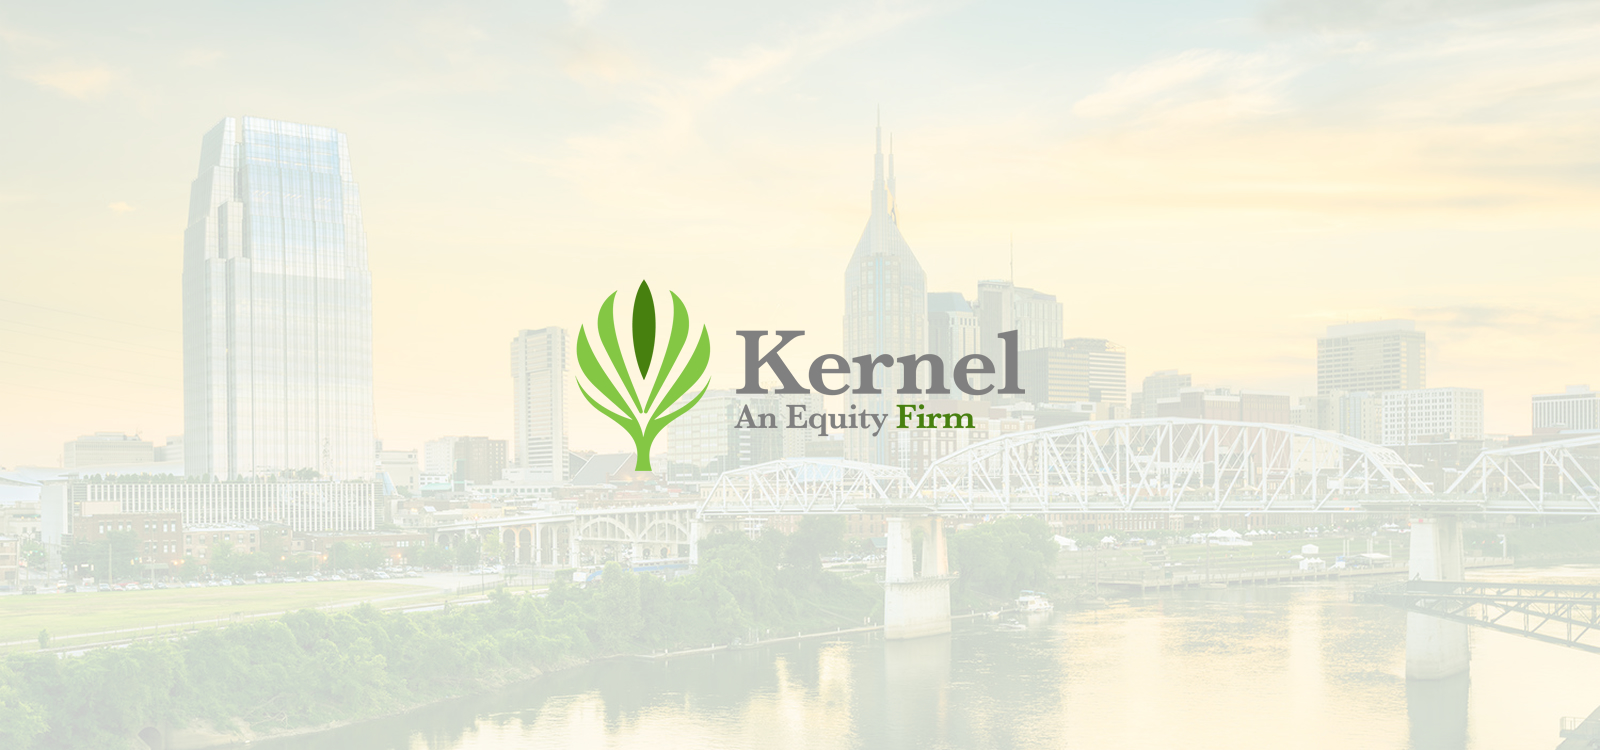 Kernel Equity Firm